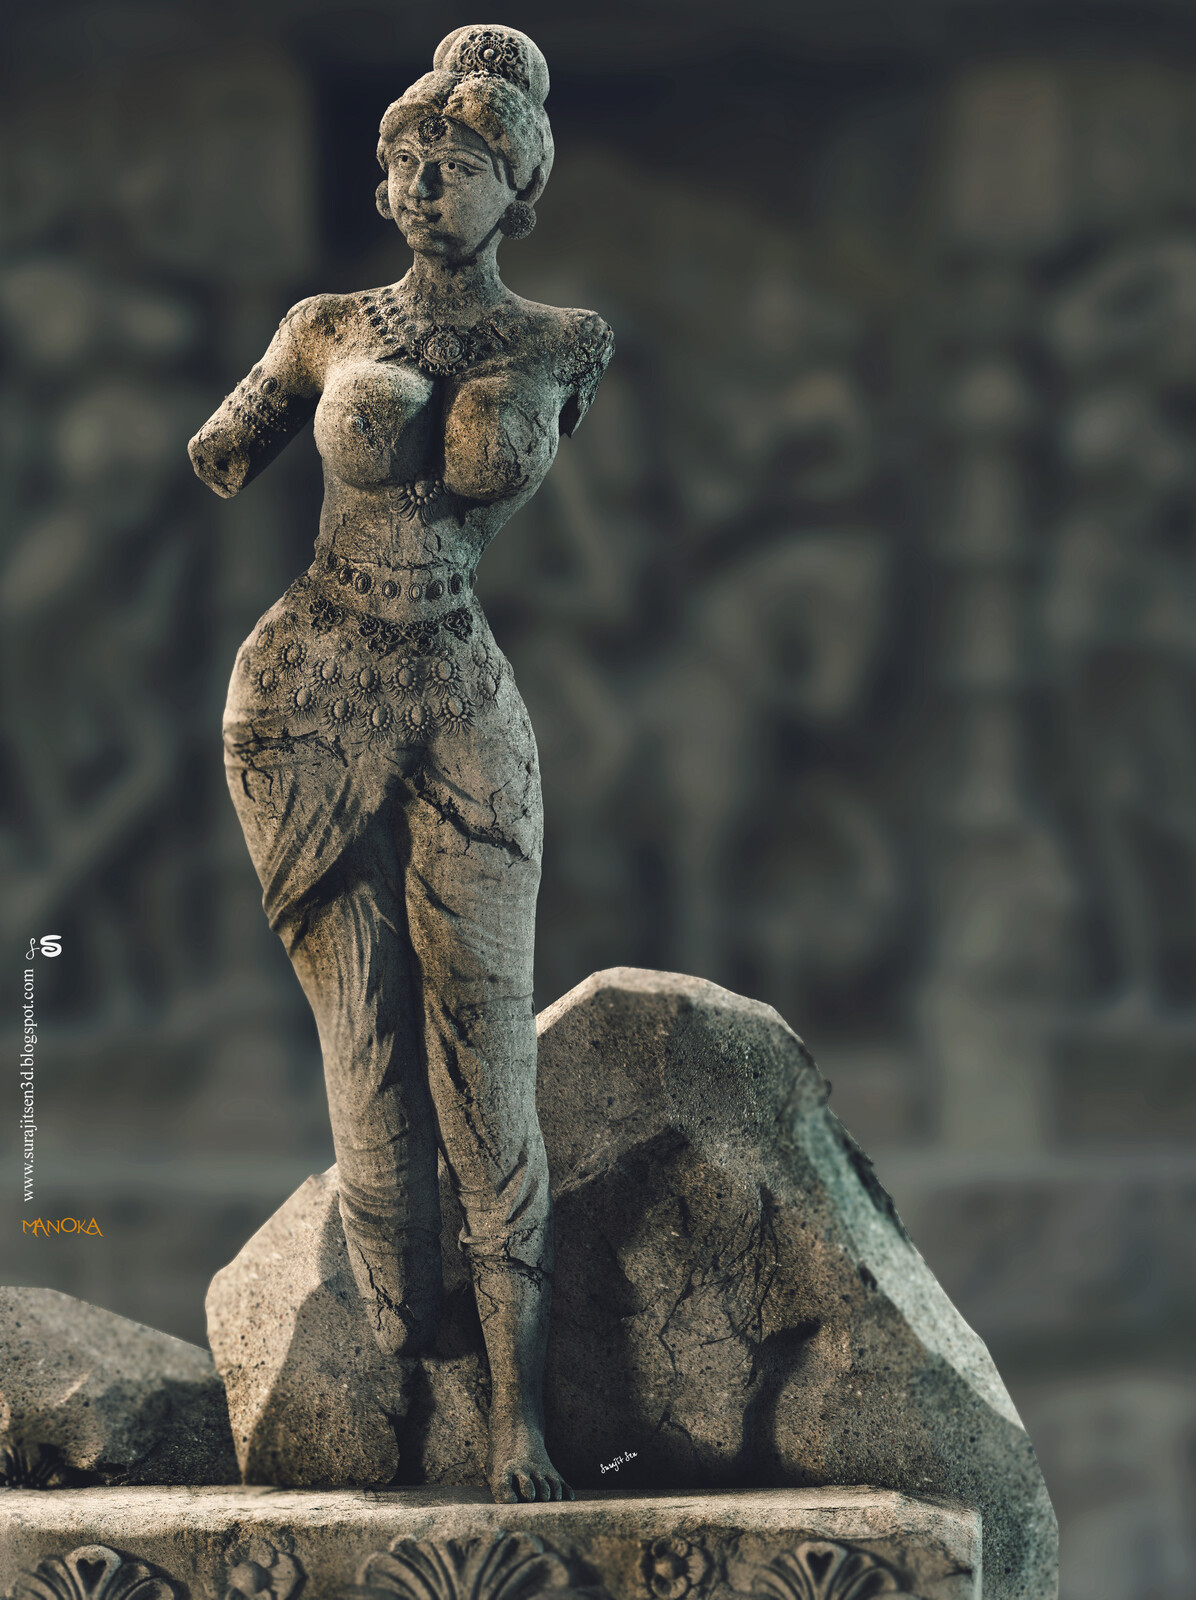 Manoka ….one of my Digital Sculpture. I am always inspired by Ancient Indian Art of Sculpting. Though lot of relics are broken due to huge time that passed over, I still see the hidden art even in those broken sculptures. Here I, simply tried to imagine a